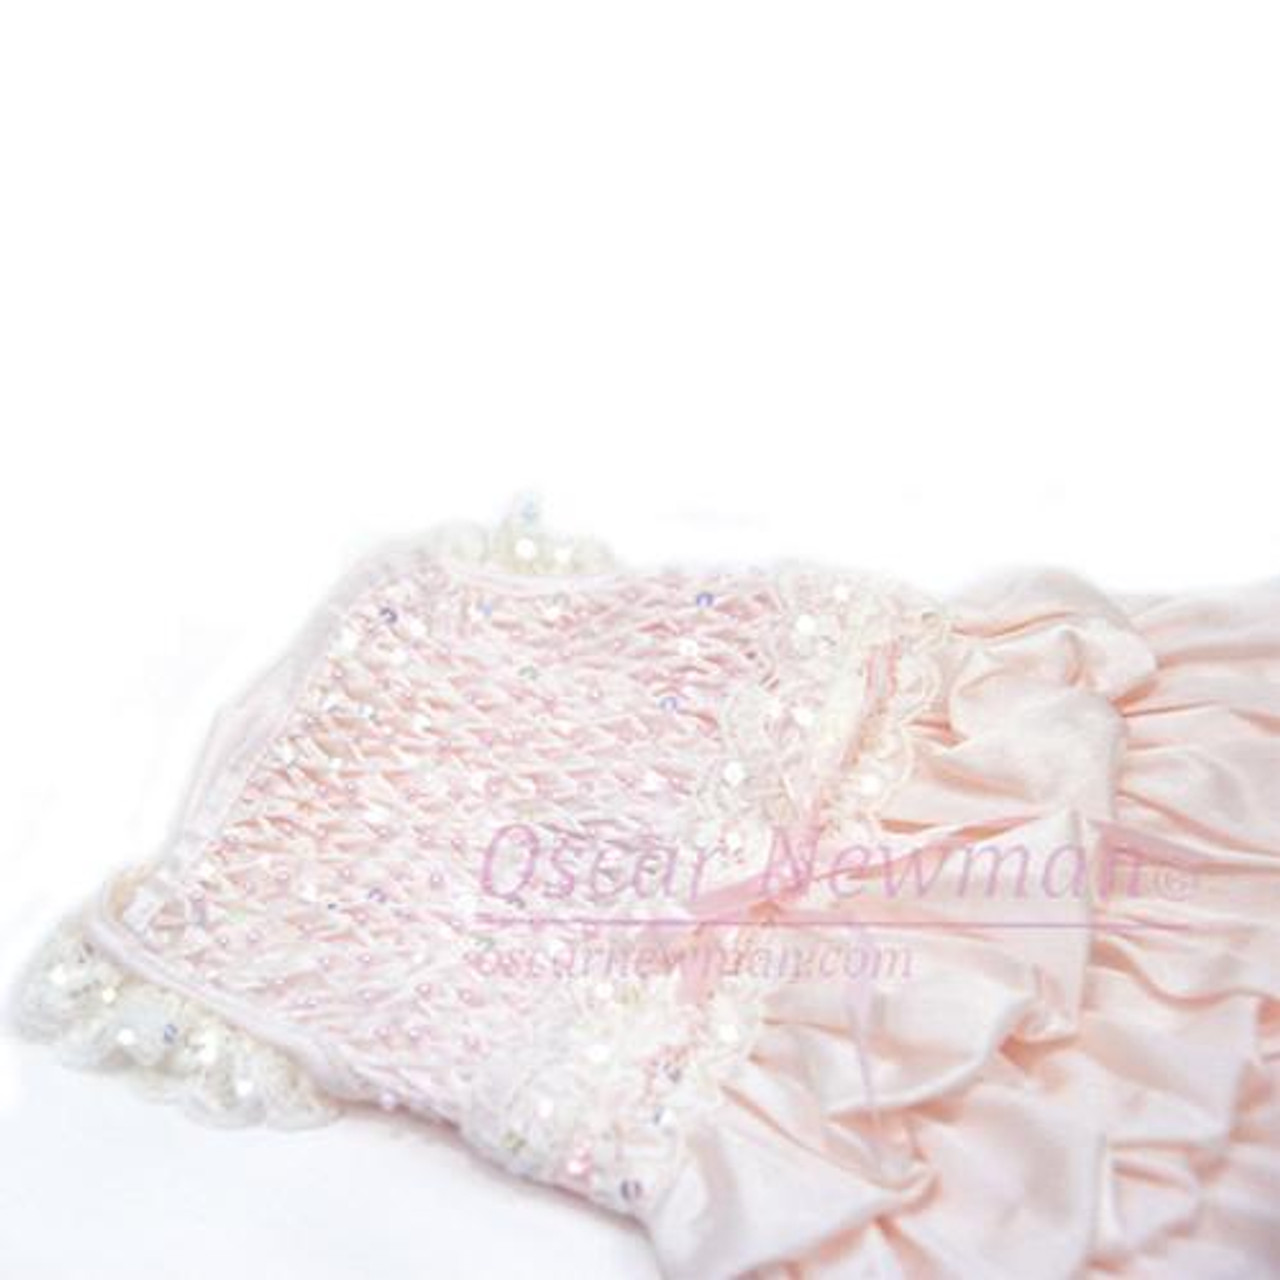 Oscar Newman I Dream of Maggie Hand Smocked Bubble Dress